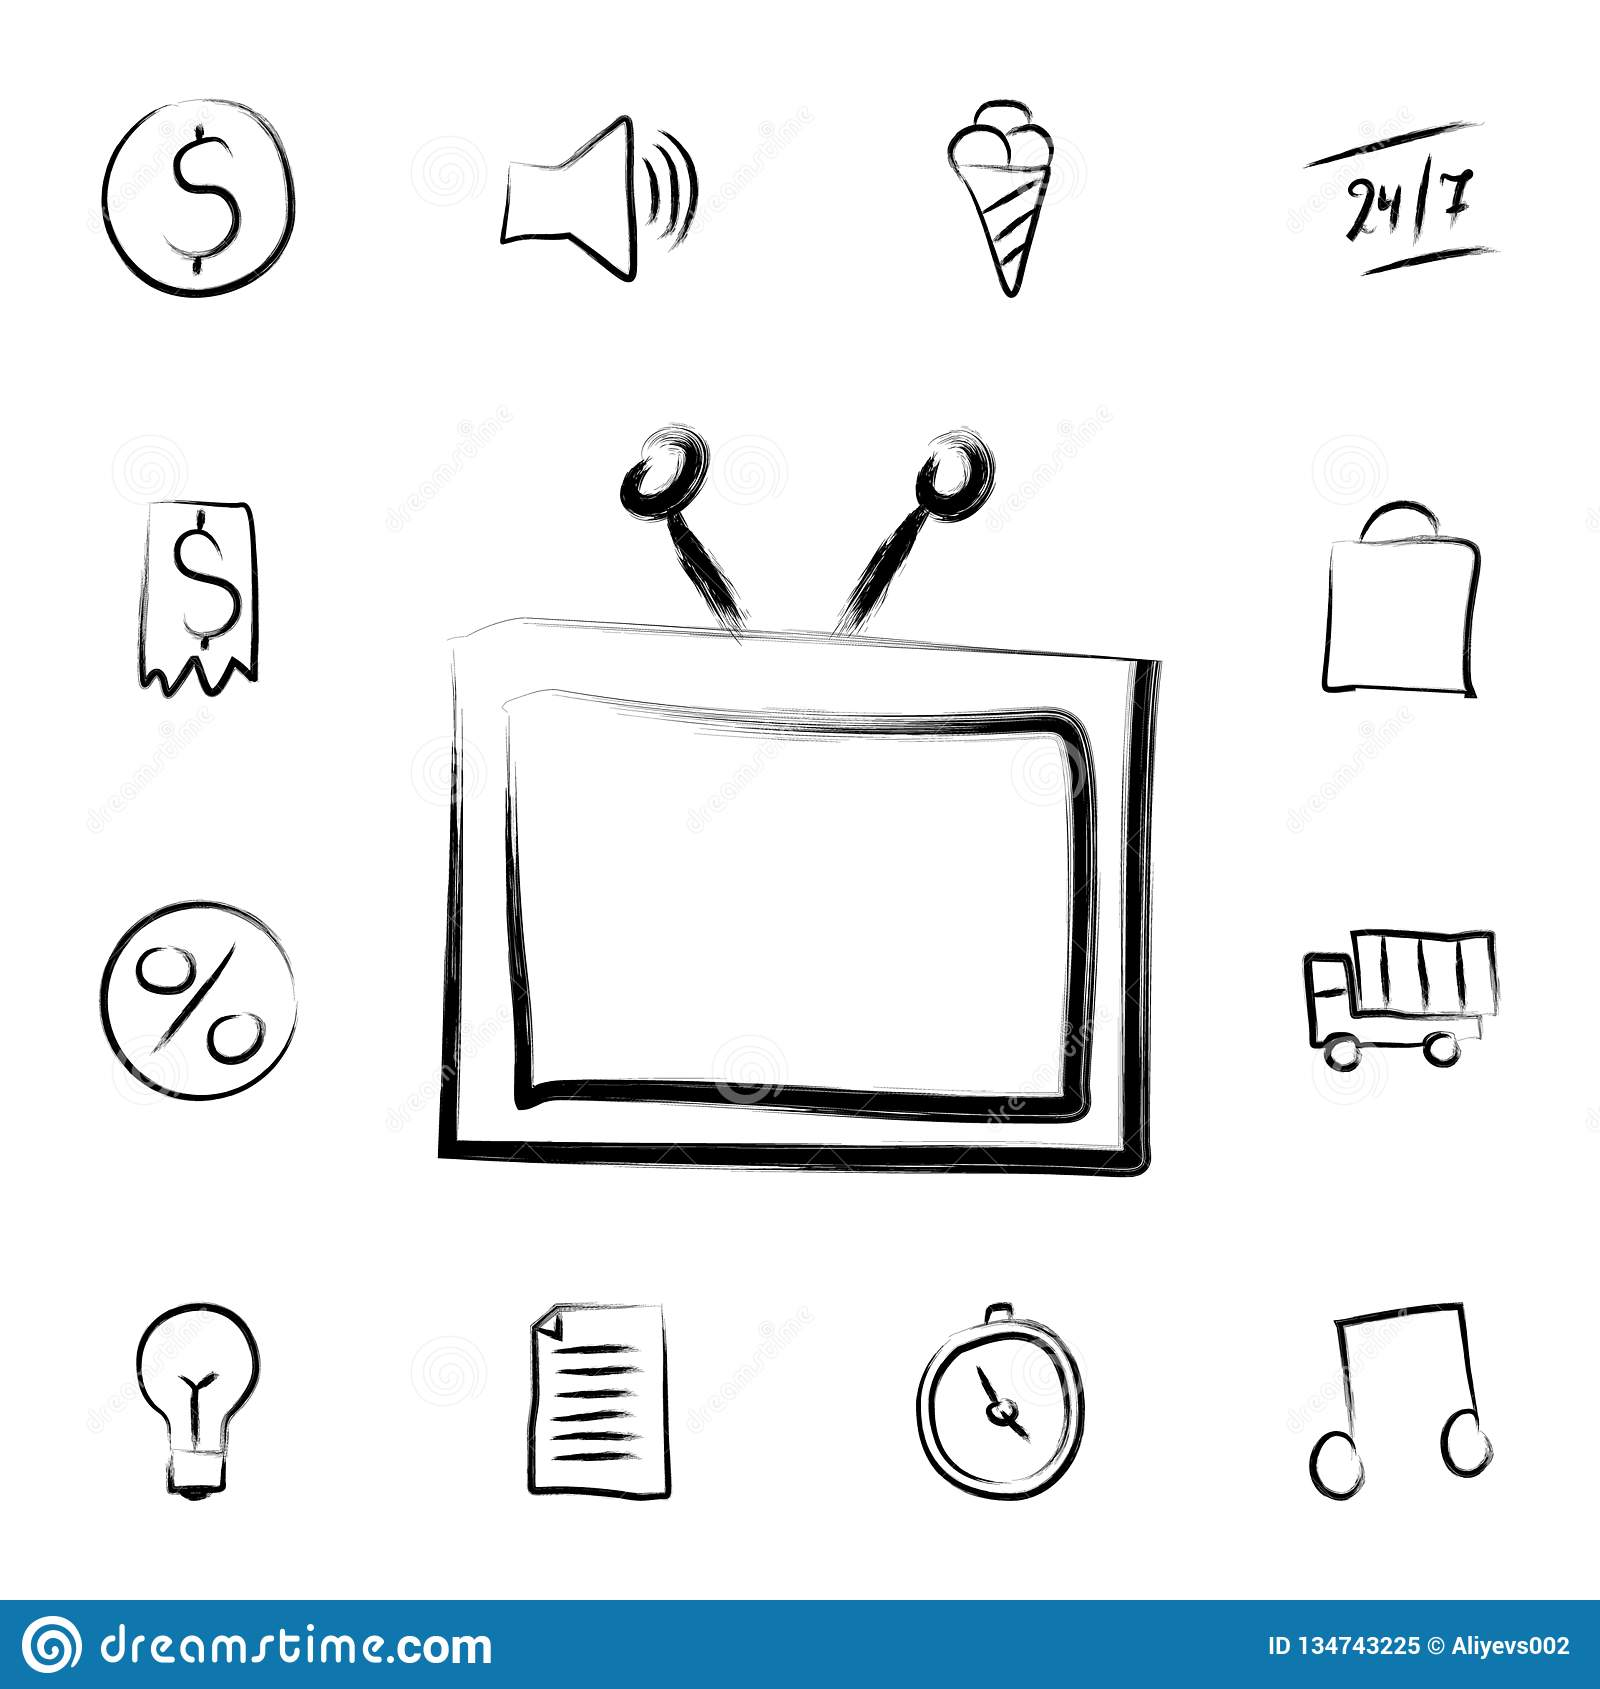 TV sketch style icon. Detailed set of banking in sketch style icons. Premium graphic design. One of the collection icons for